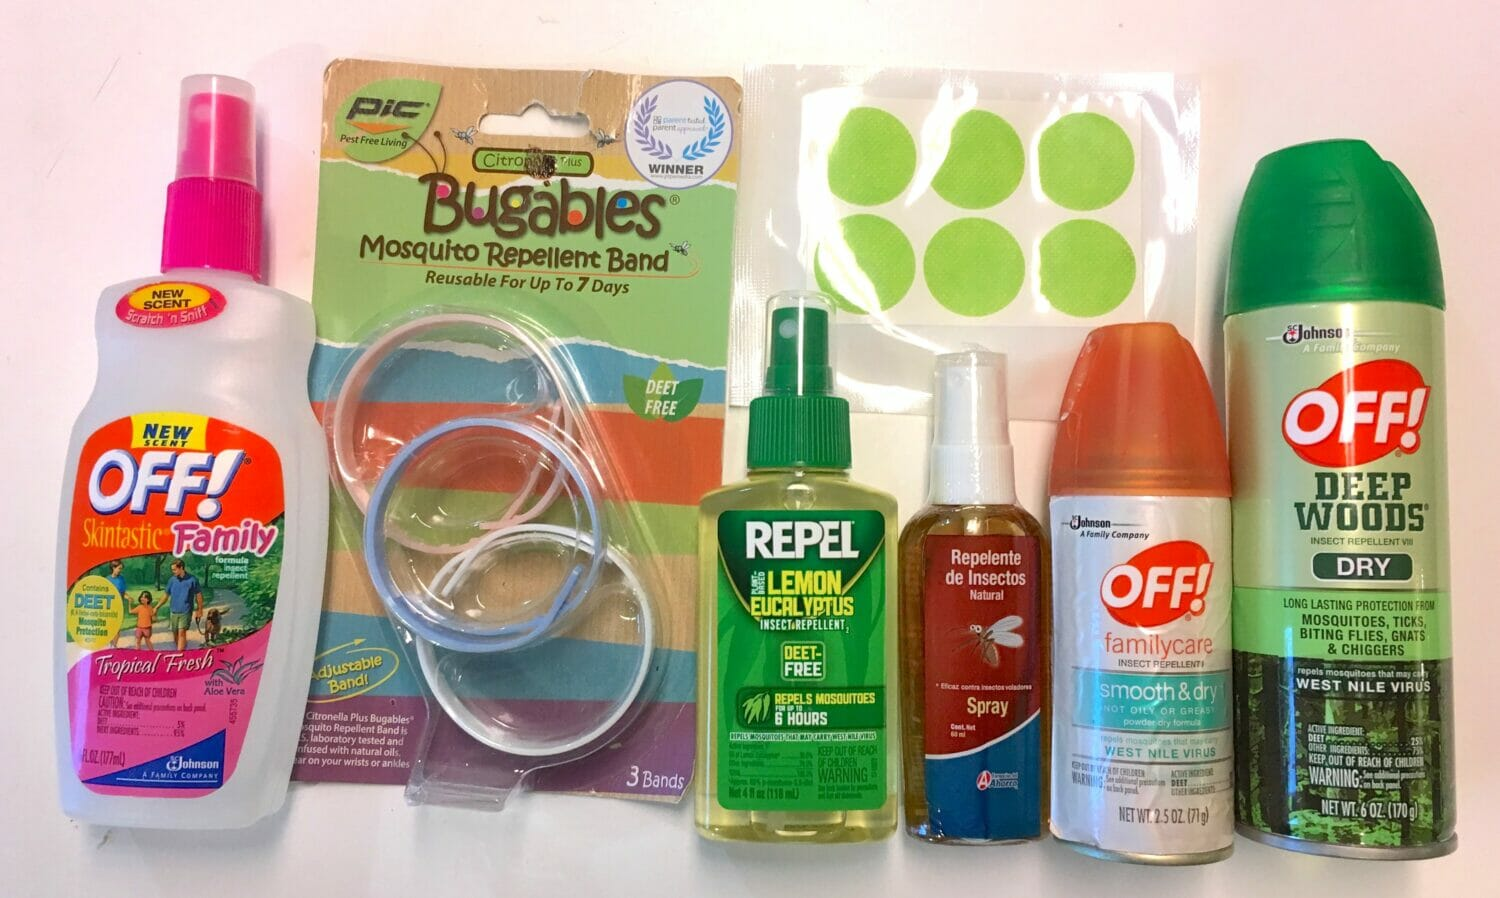 Summer is just around the corner. Are you ready to protect your kids from tick bites? Here's what I've learned about the best way to prevent tick bites.